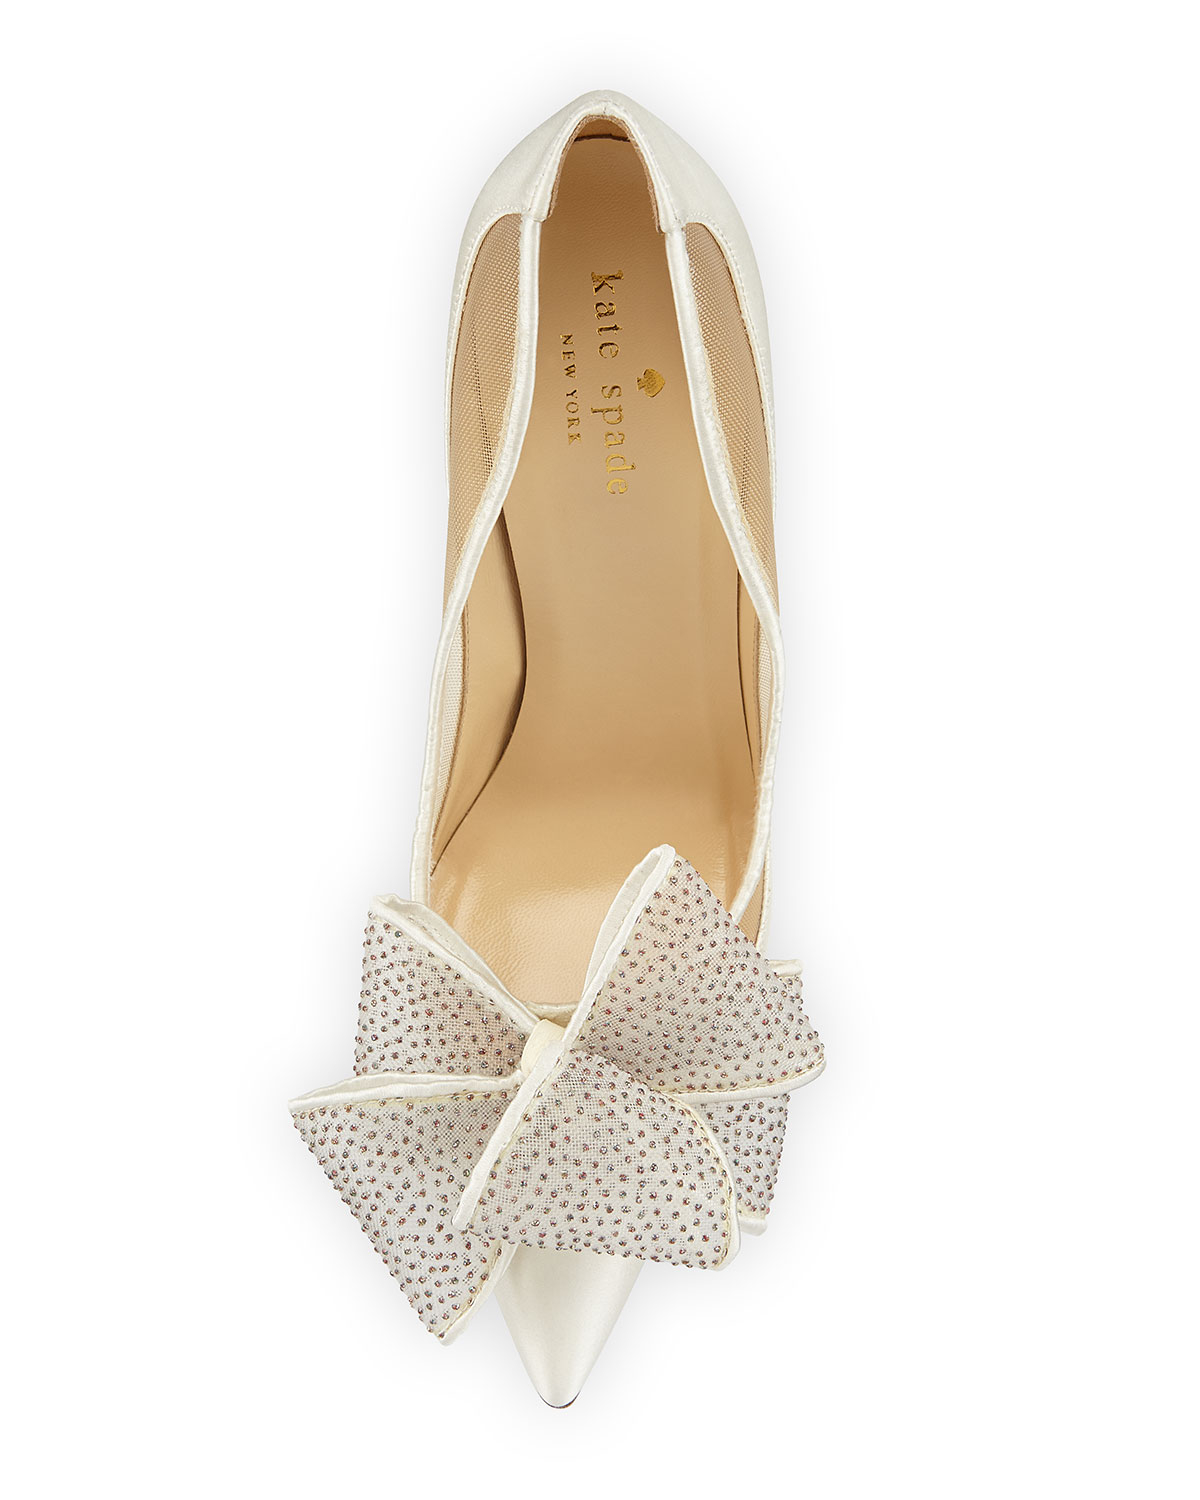 f247467b127c Kate Spade Lovely Satin Bow-Detail Pumps in White - Lyst